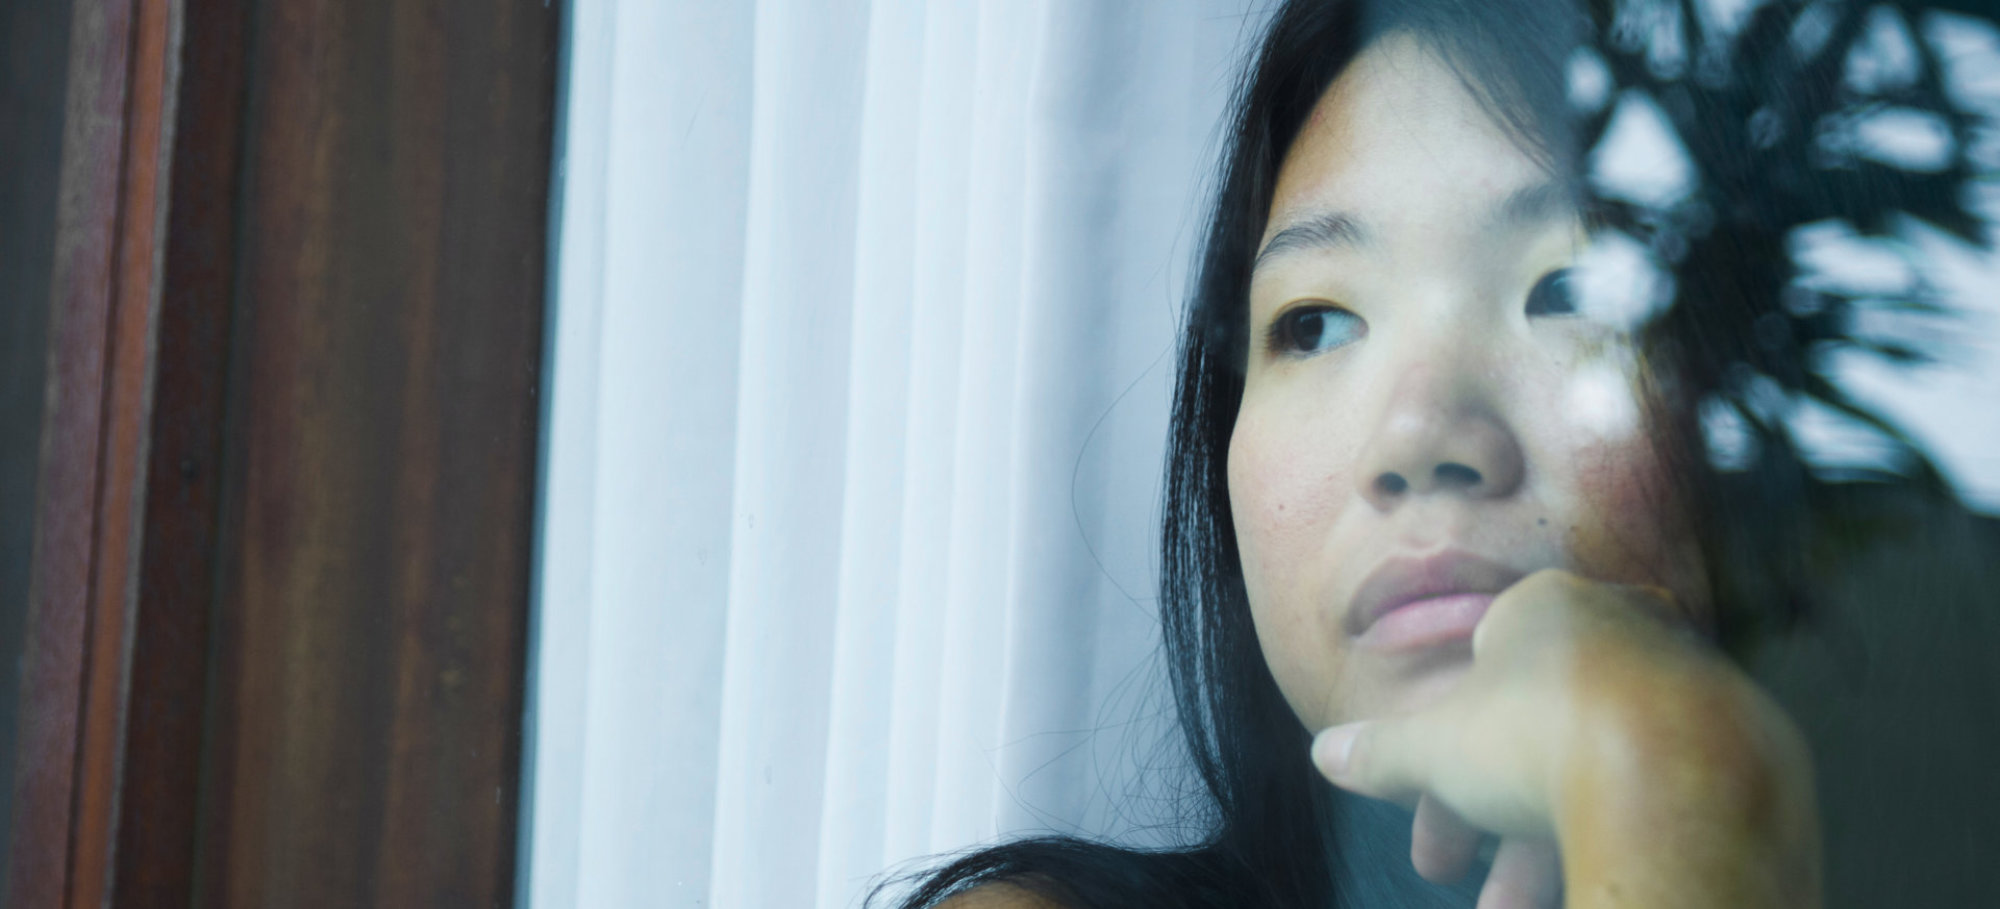 Sad and depressed Asian woman looking thoughtful